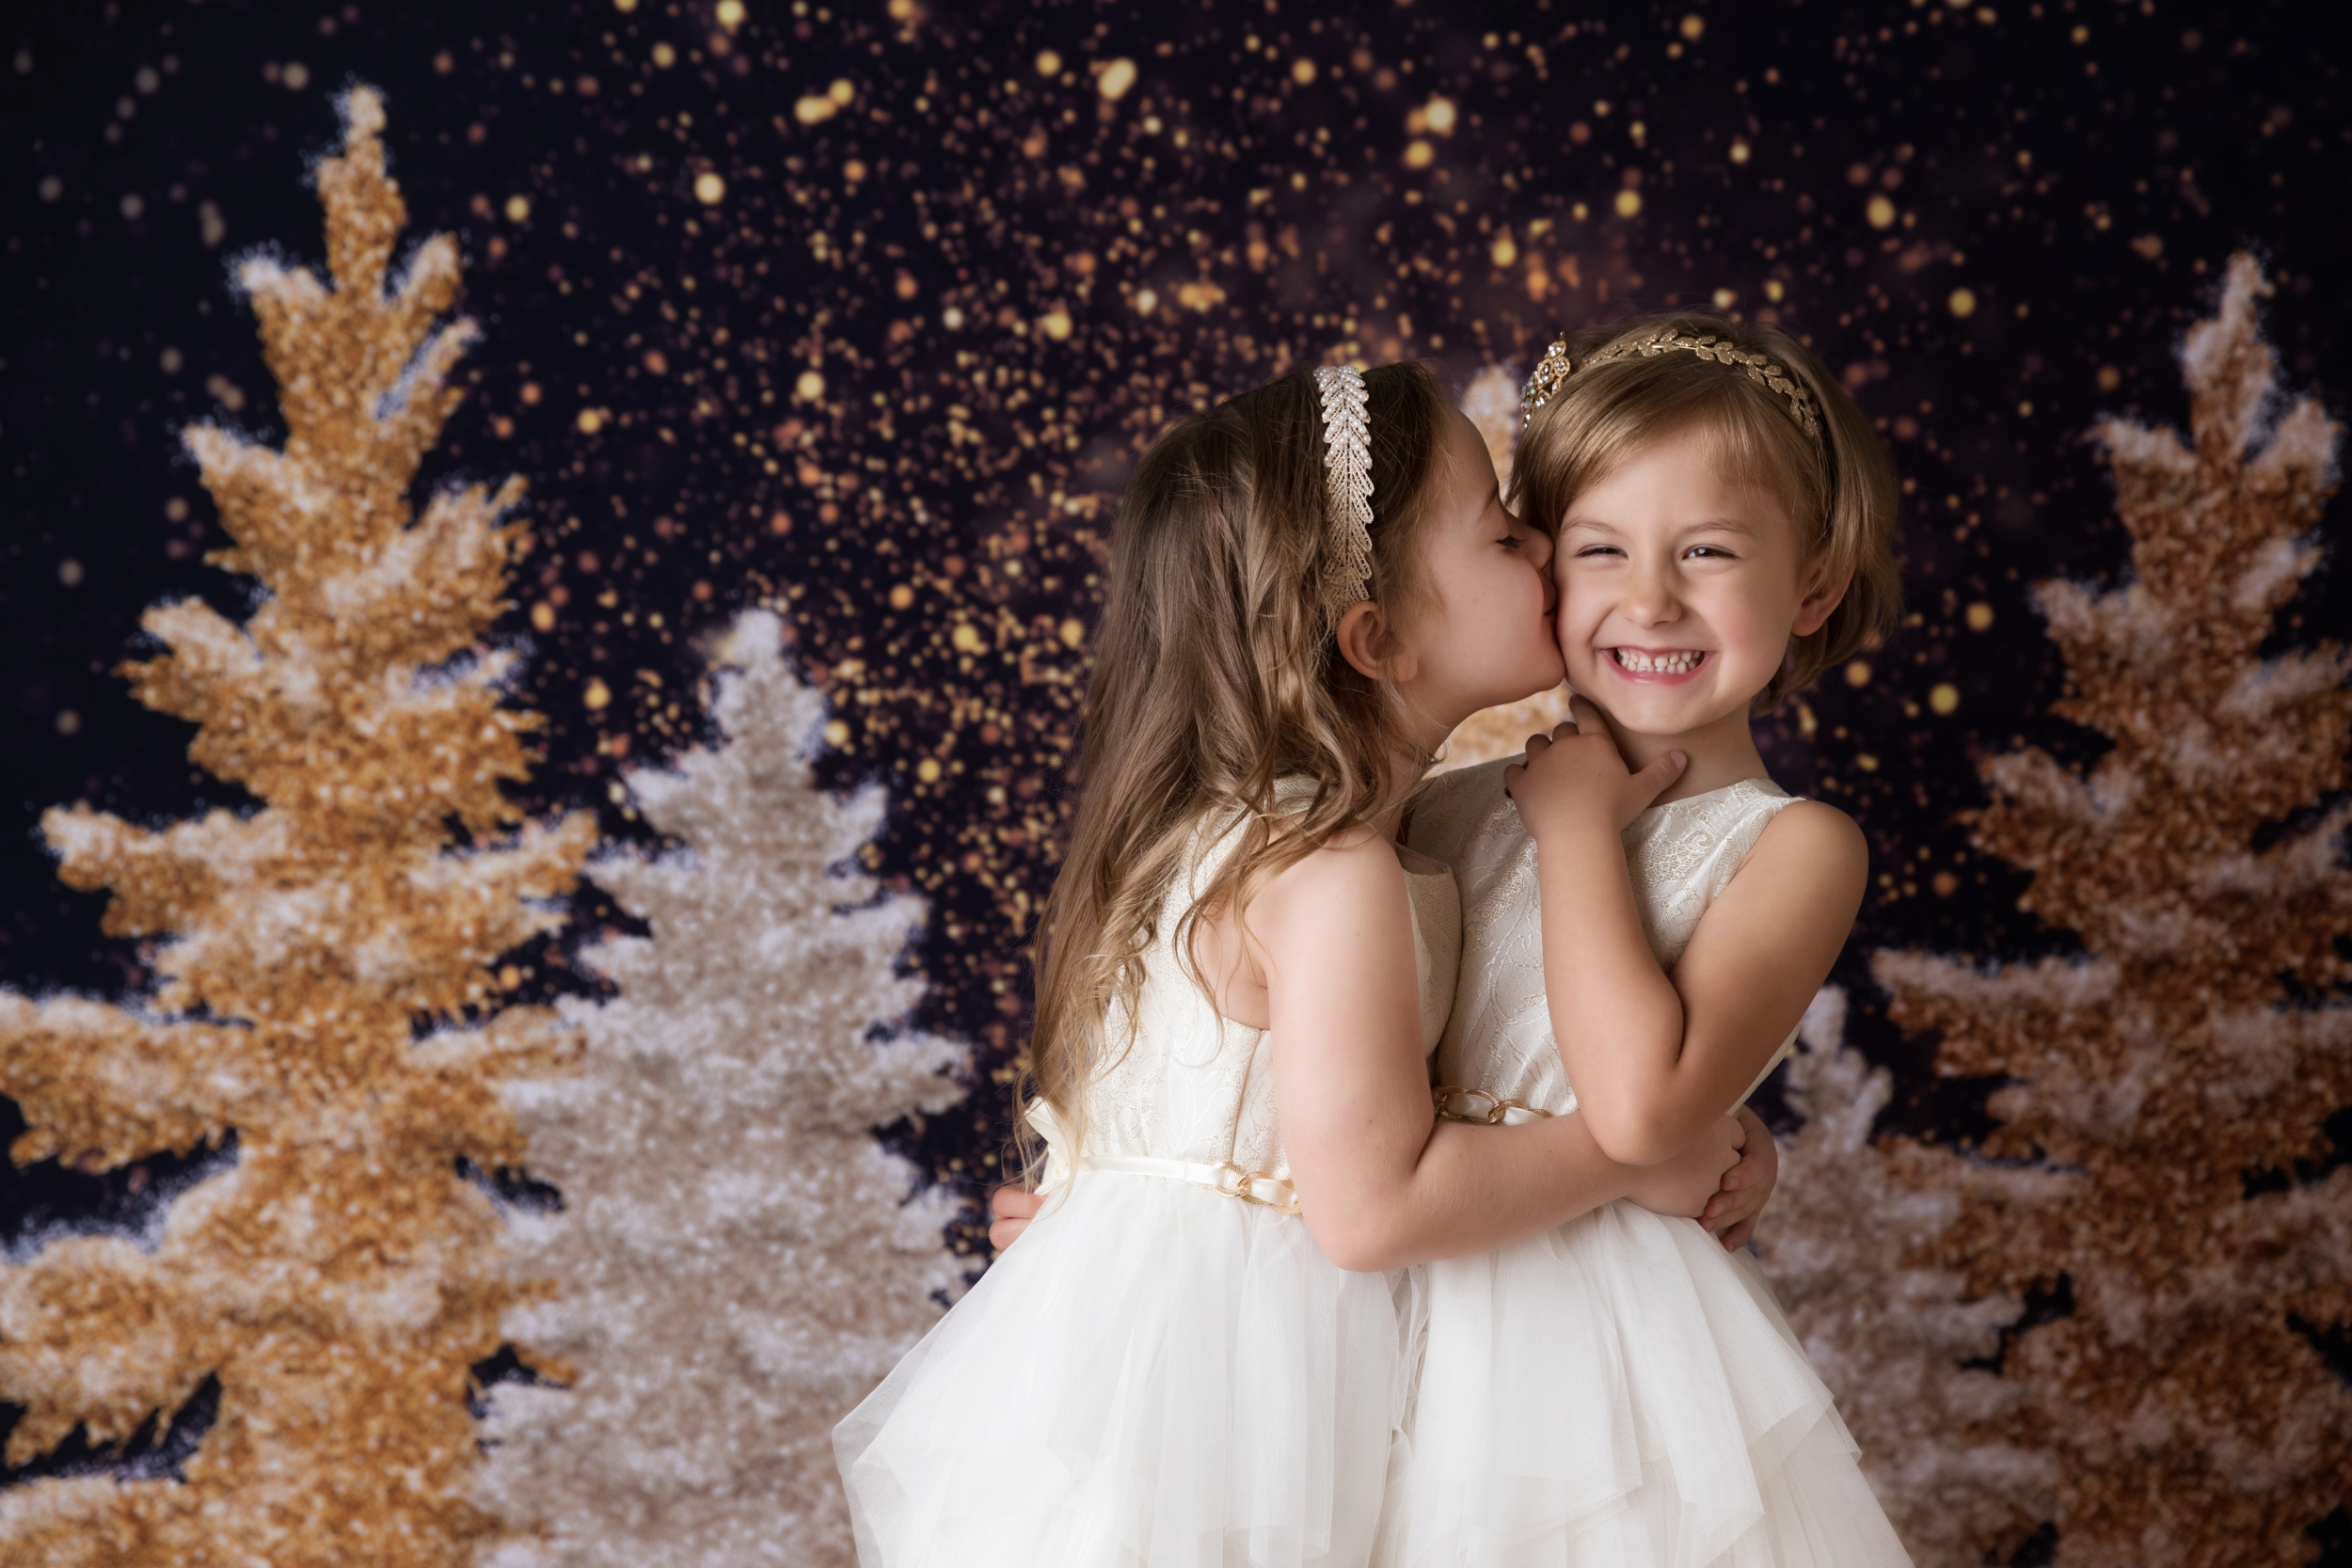 Christmas-Mini-Sessions-Jessica-Doffing-Photography_0003.jpg